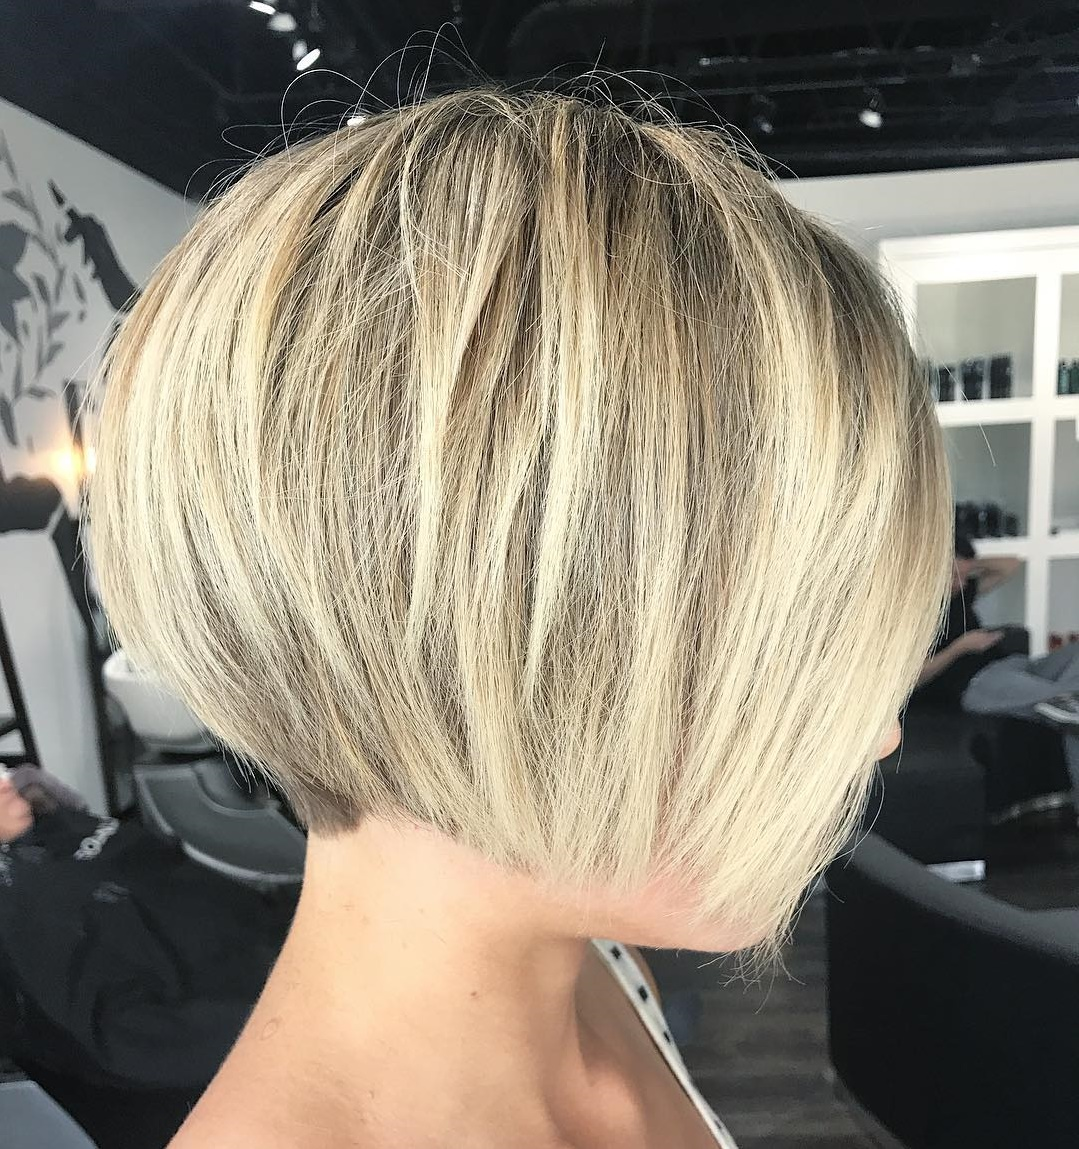 Short Sexy Jaw-Length Bob Cut